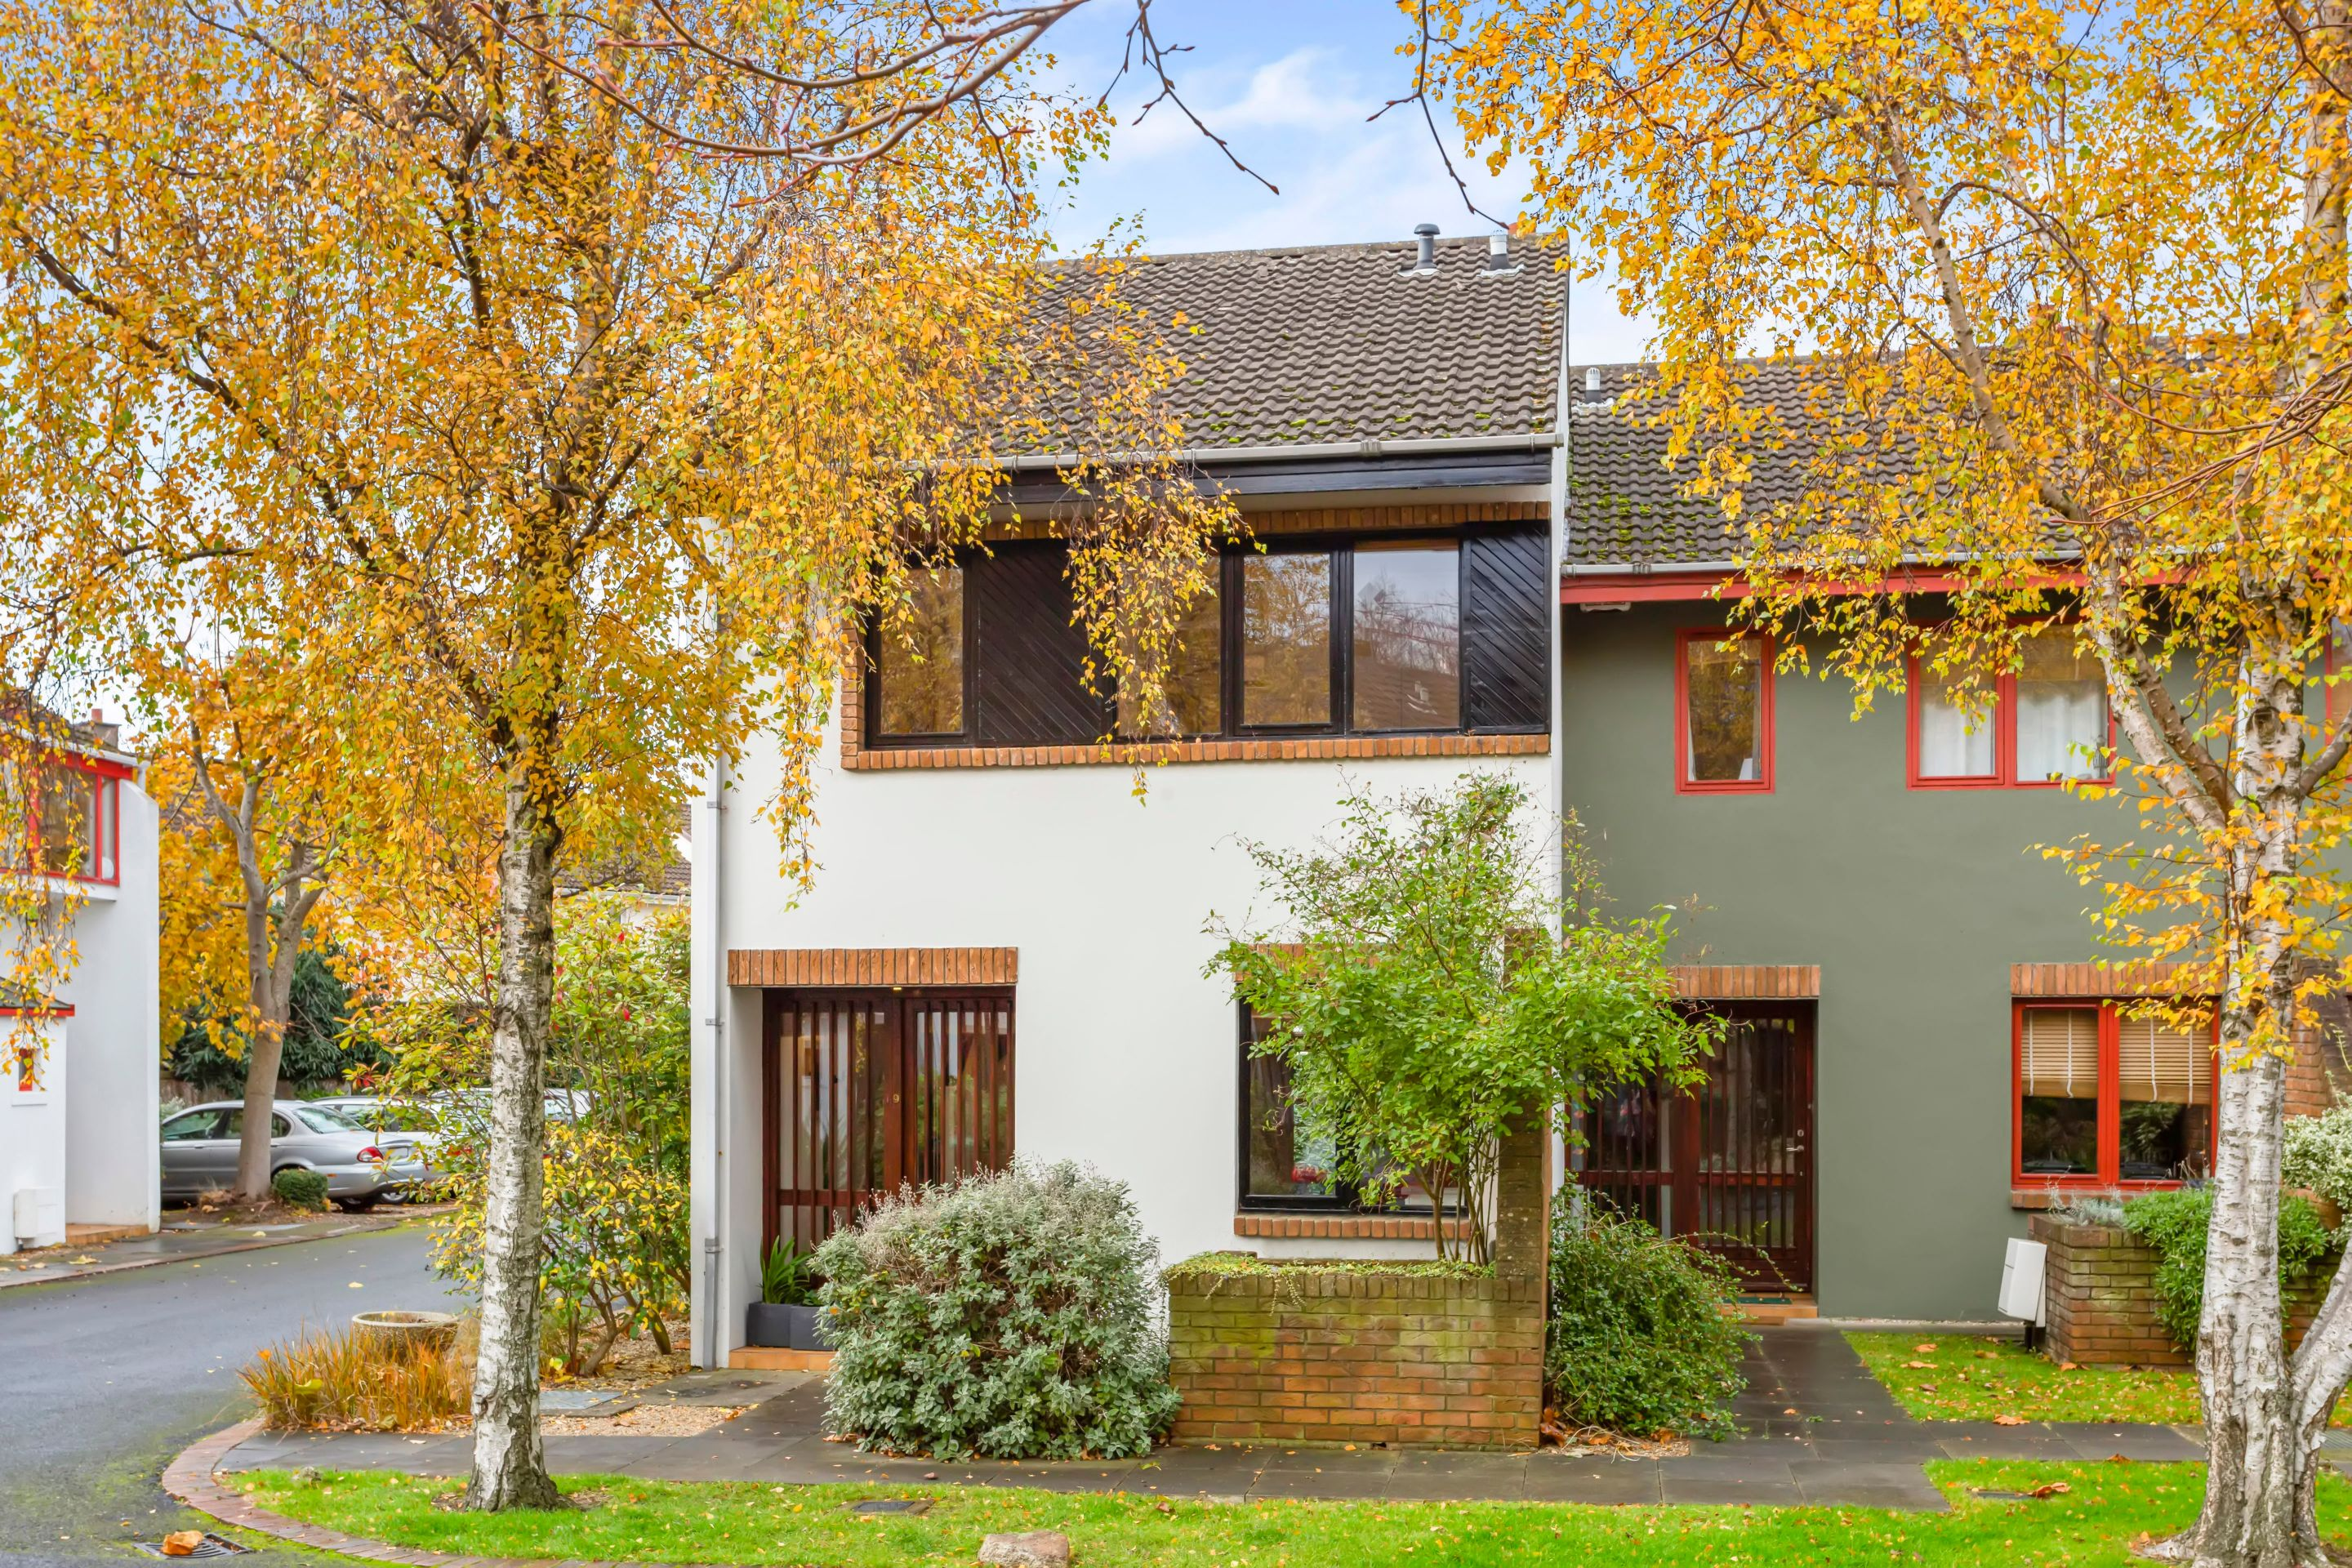 19 Oak Apple Green, Oakland's Drive, Rathgar, Dublin 6